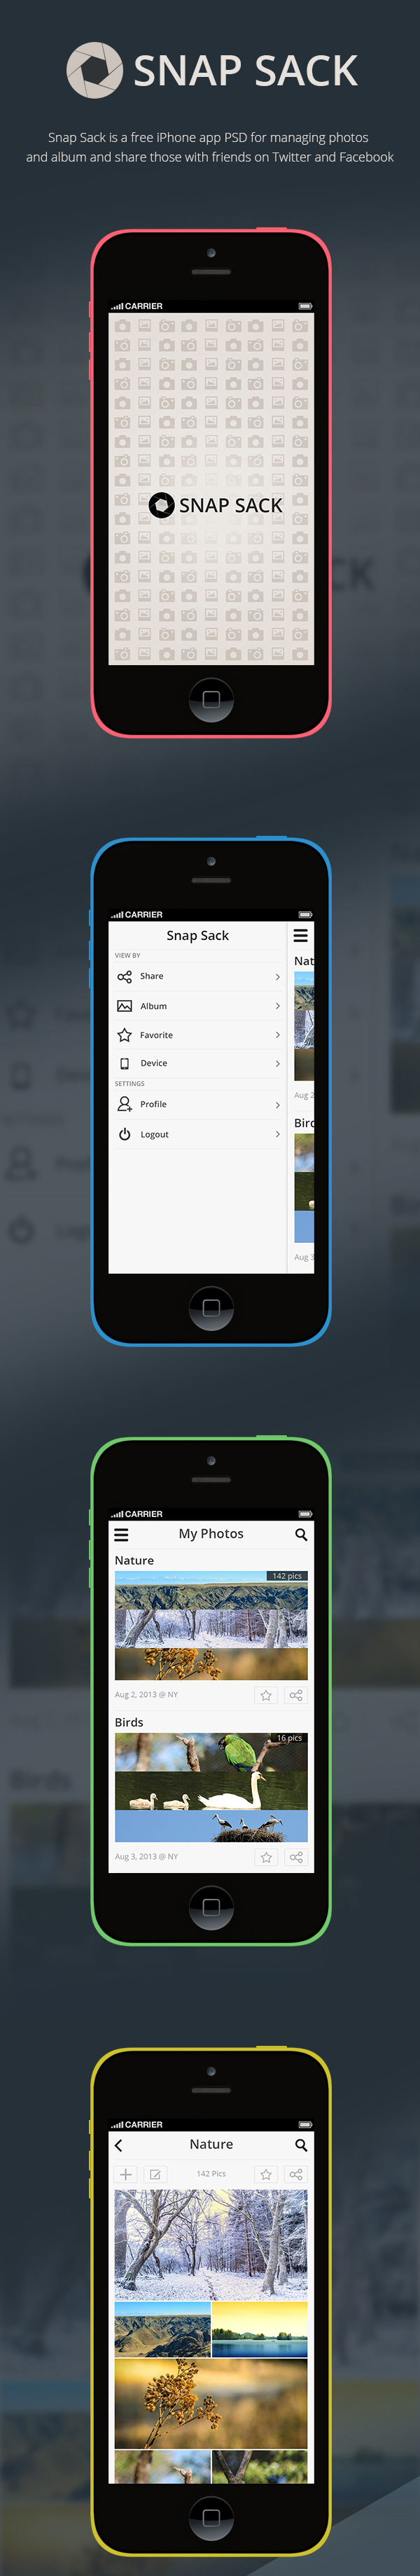 Snap-Sack-App-PSD-for-iPhone